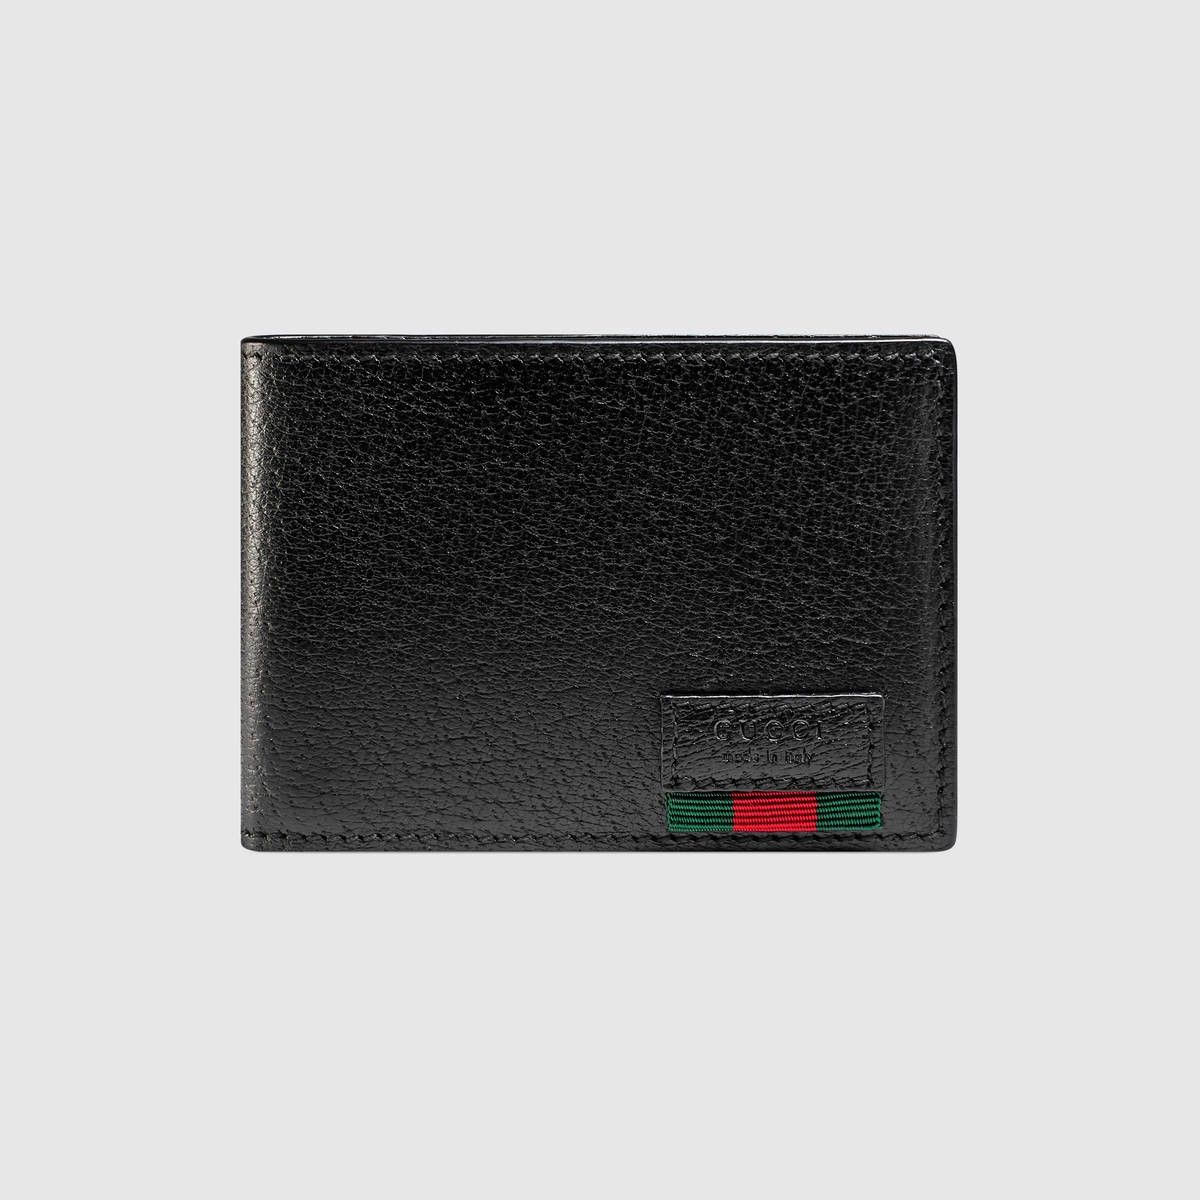 6c19f2dc0c4 GUCCI Leather bi-fold wallet with Web - black leather.  gucci ...